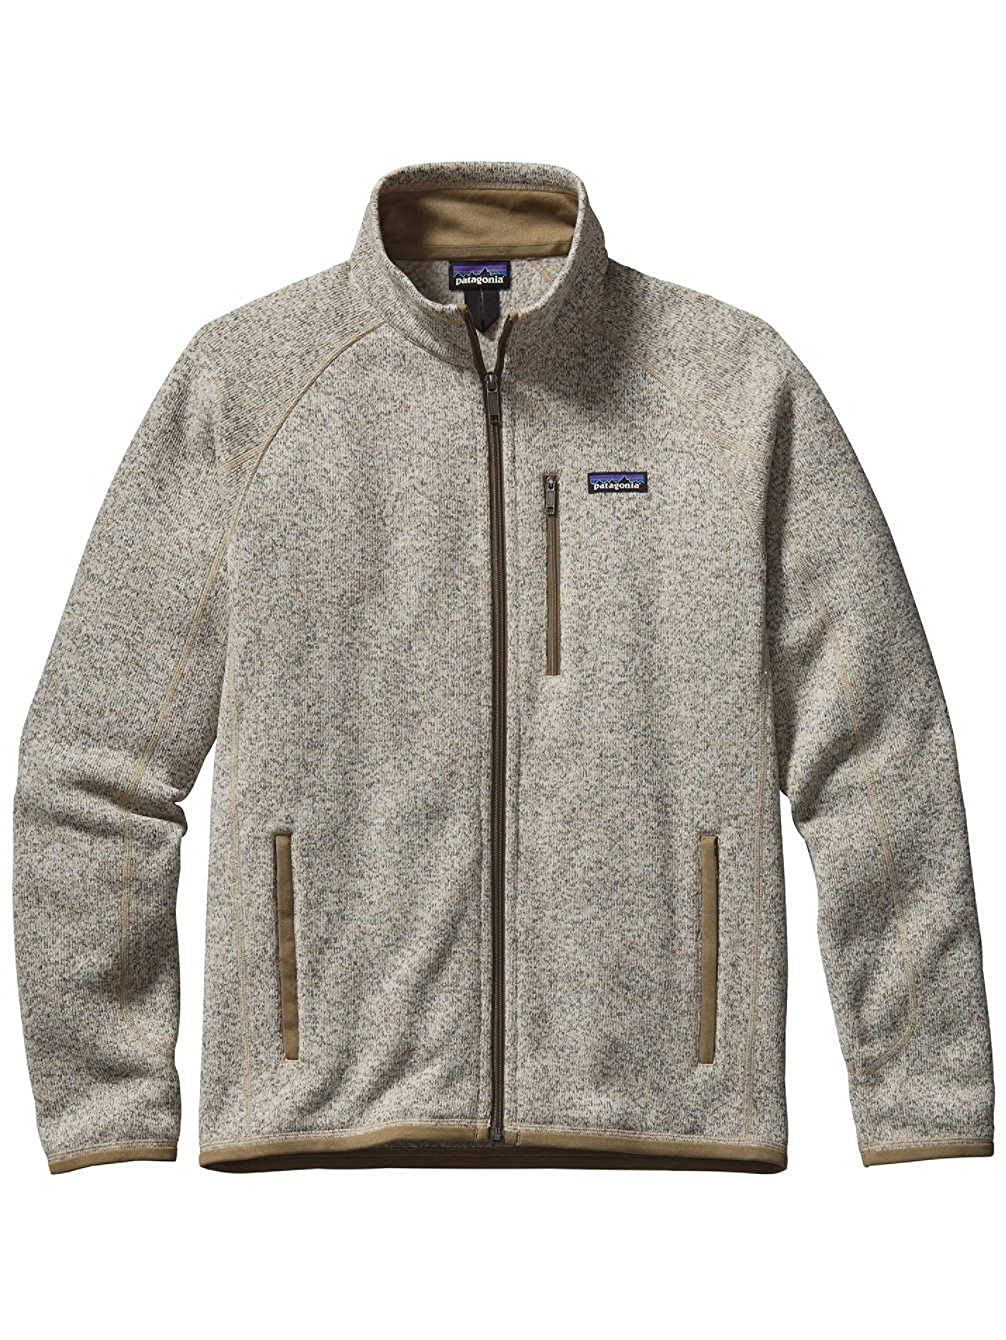 Patagonia Men's Better Sweater Jacket Patagonia Apparel Mens